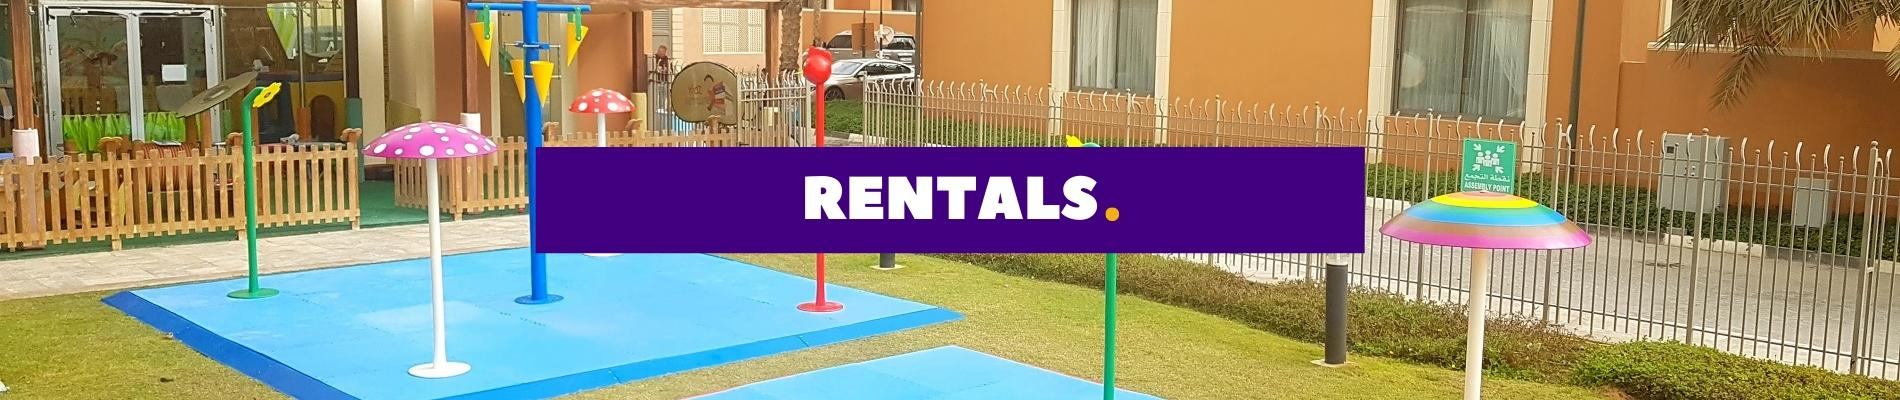 Moon Kids Category Rentals